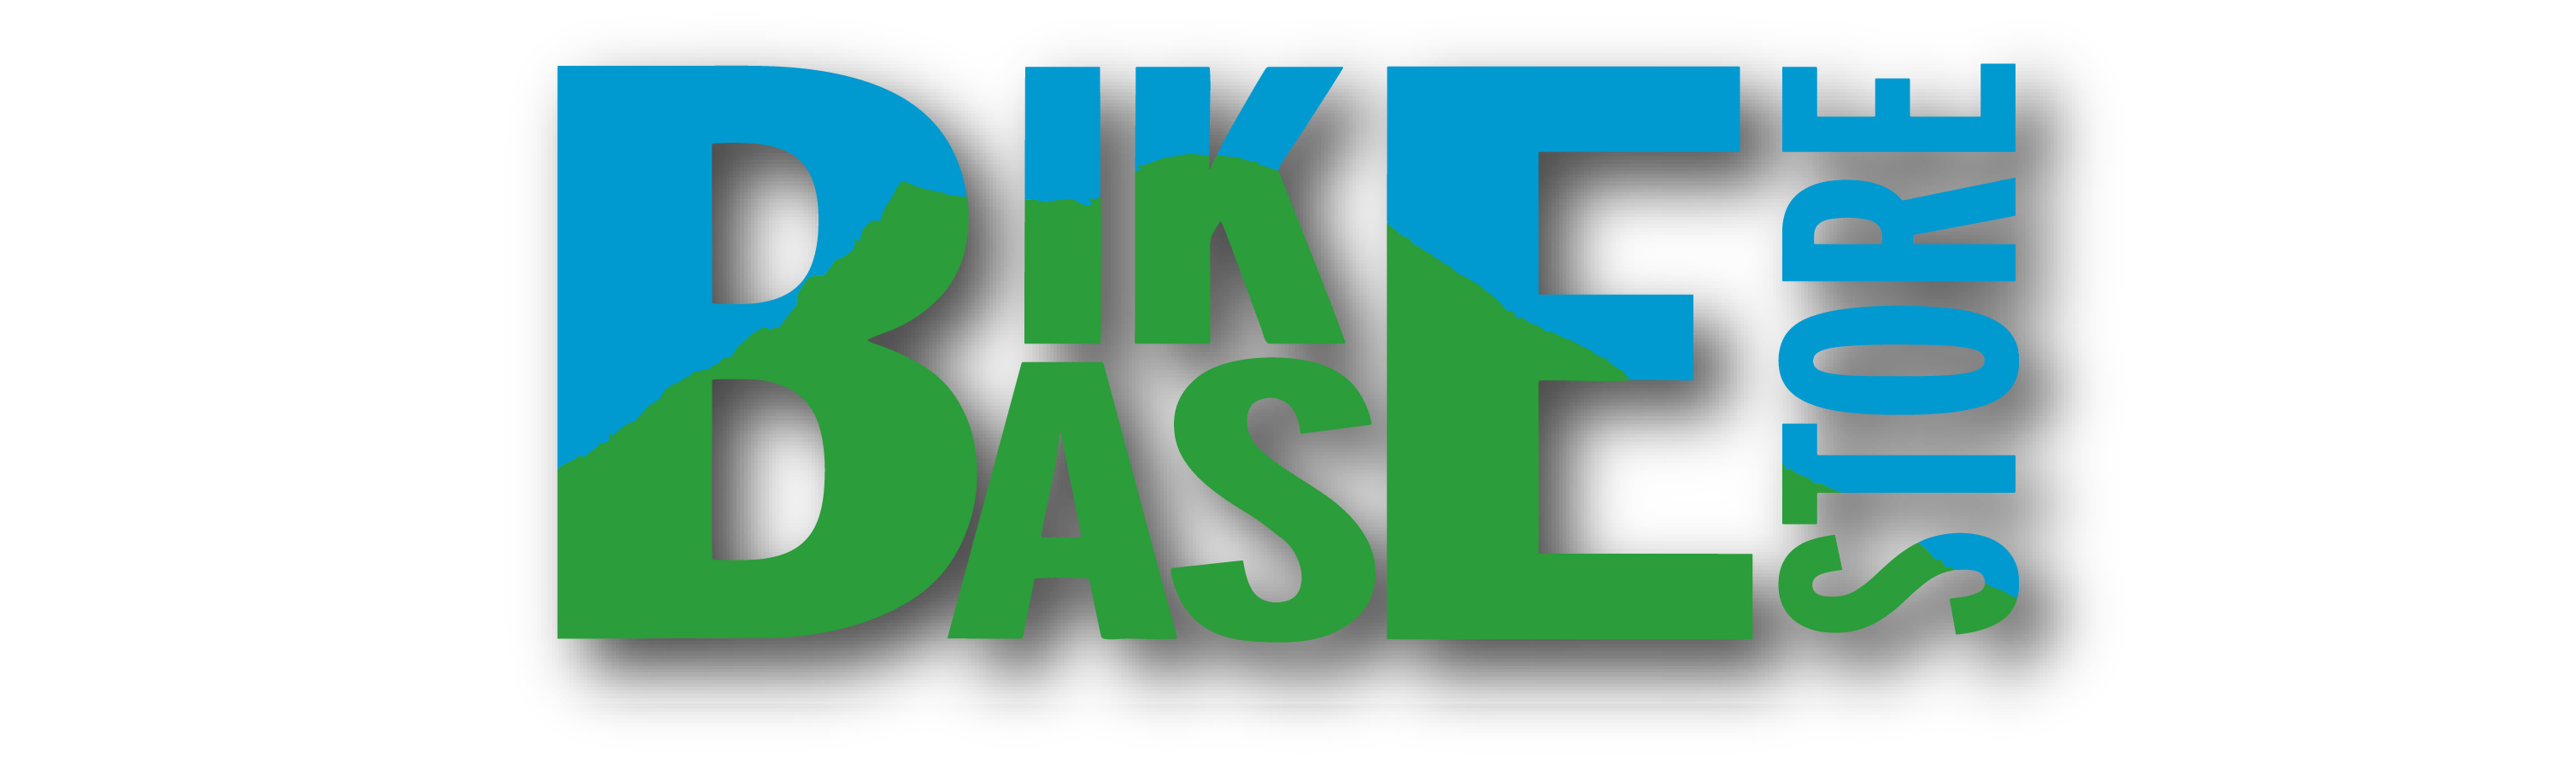 Logo Bike Base Store GmbH